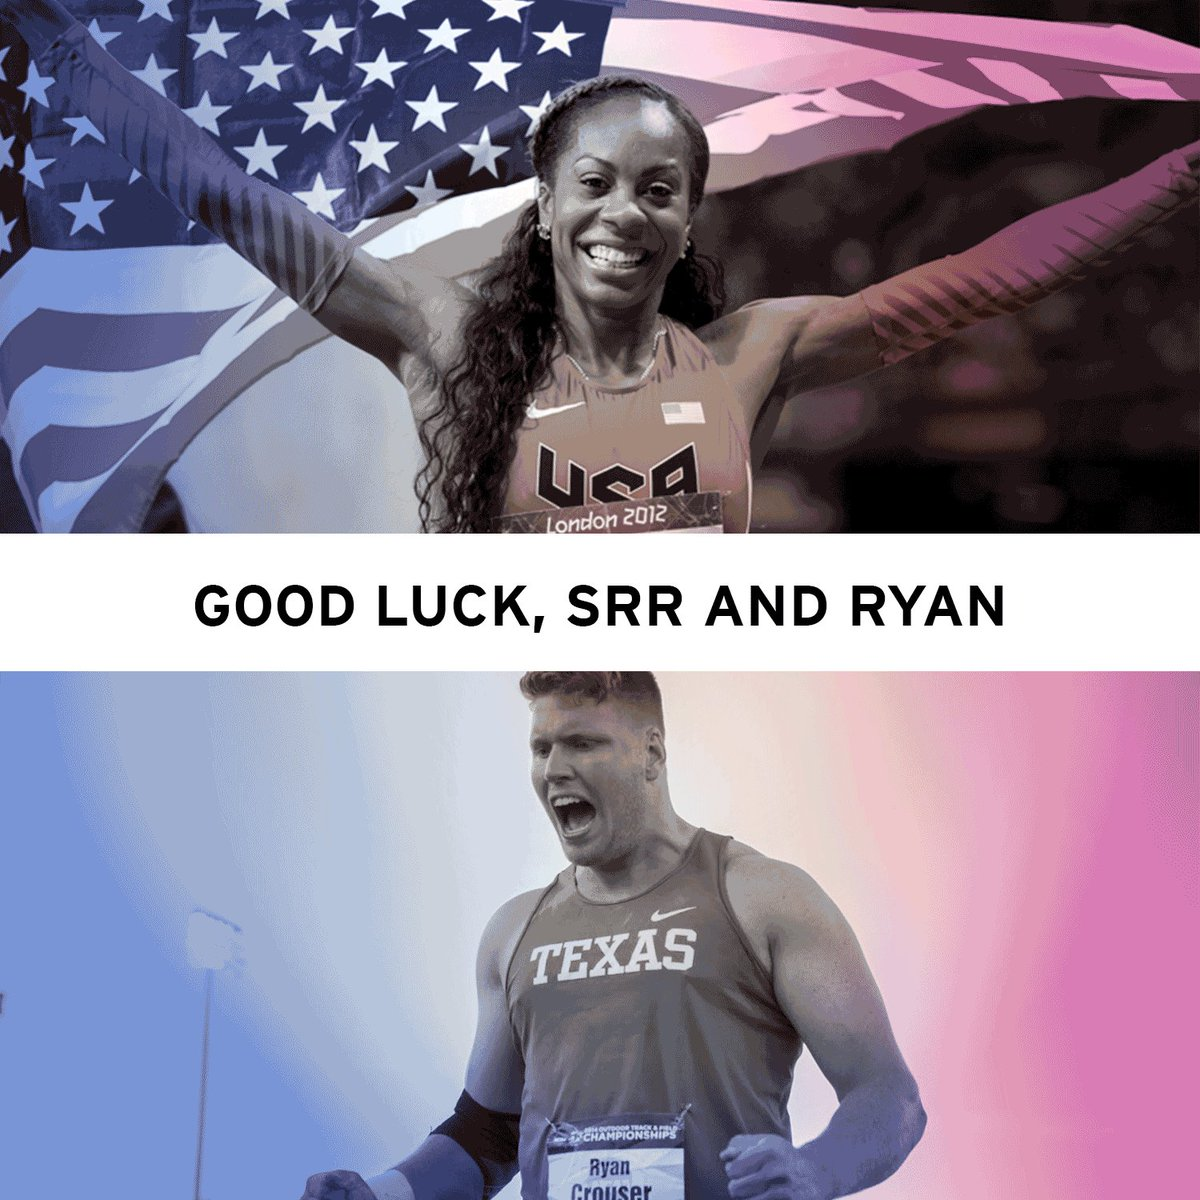 Best of luck to Texas alumni @SanyaRichiRoss & @RCrouserThrows as they compete in the T&F Olympic Trials tomorrow. https://t.co/y98fBk9T1W